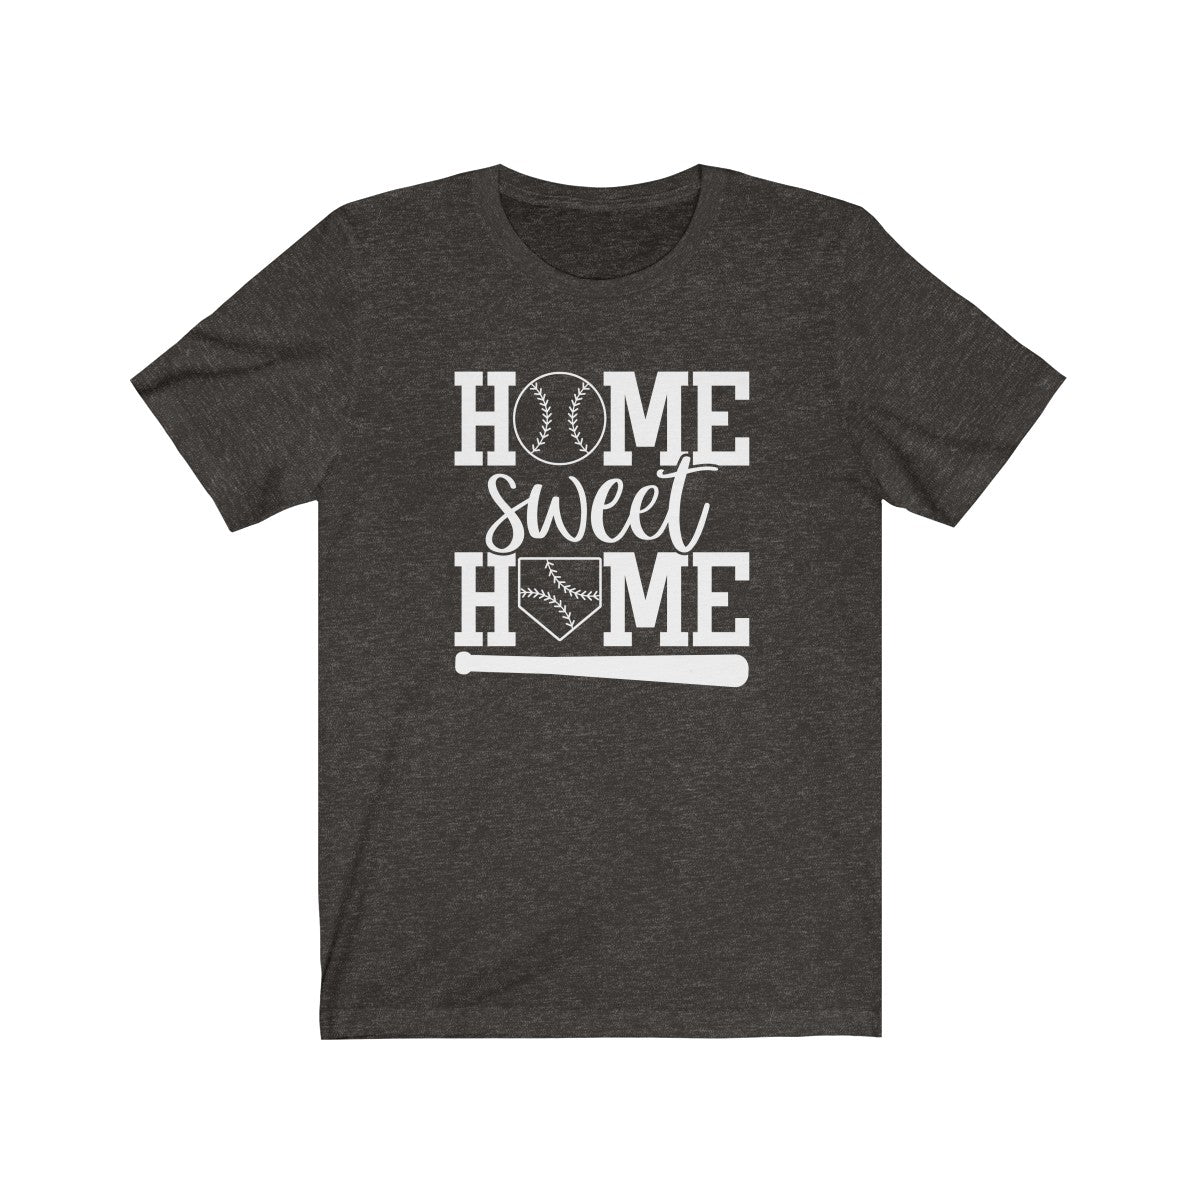 Home Sweet Home Unisex Jersey Short Sleeve Tee